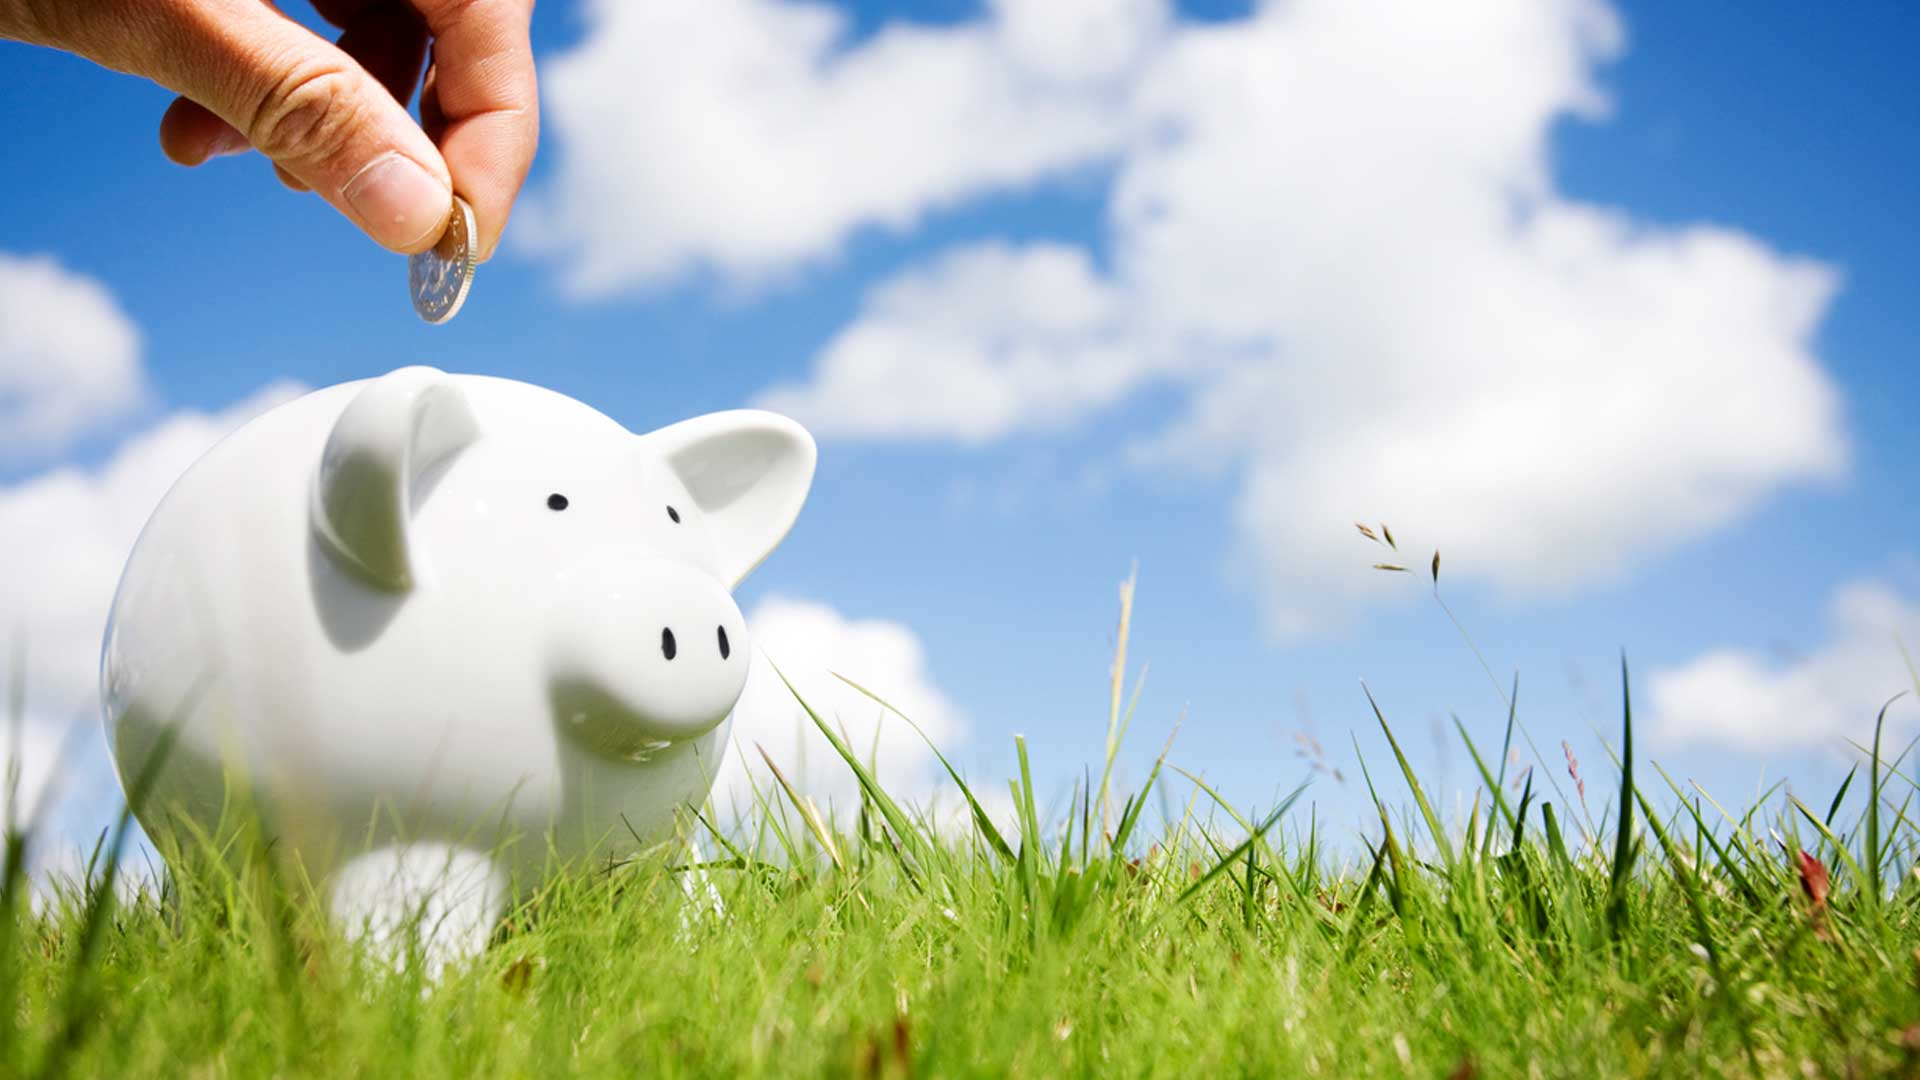 Saving money on lawn care services in Berkeley Heights, NJ.